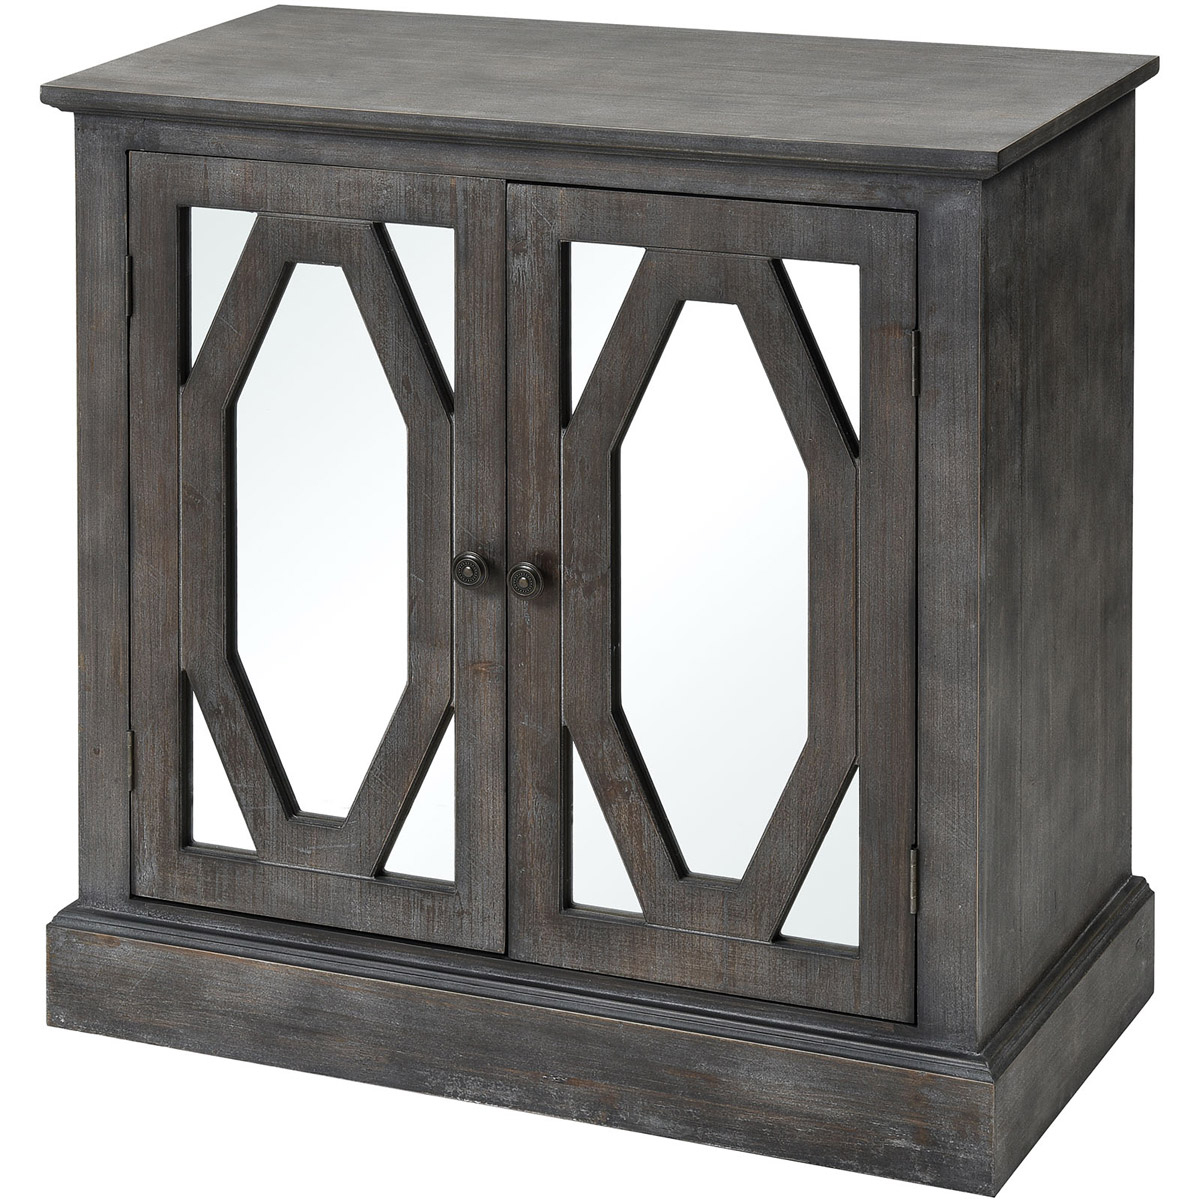 Barn Wood Rosendale Carved Accent Ashley Furniture Glass pertaining to Kara 4 Door Accent Cabinets (Image 8 of 30)